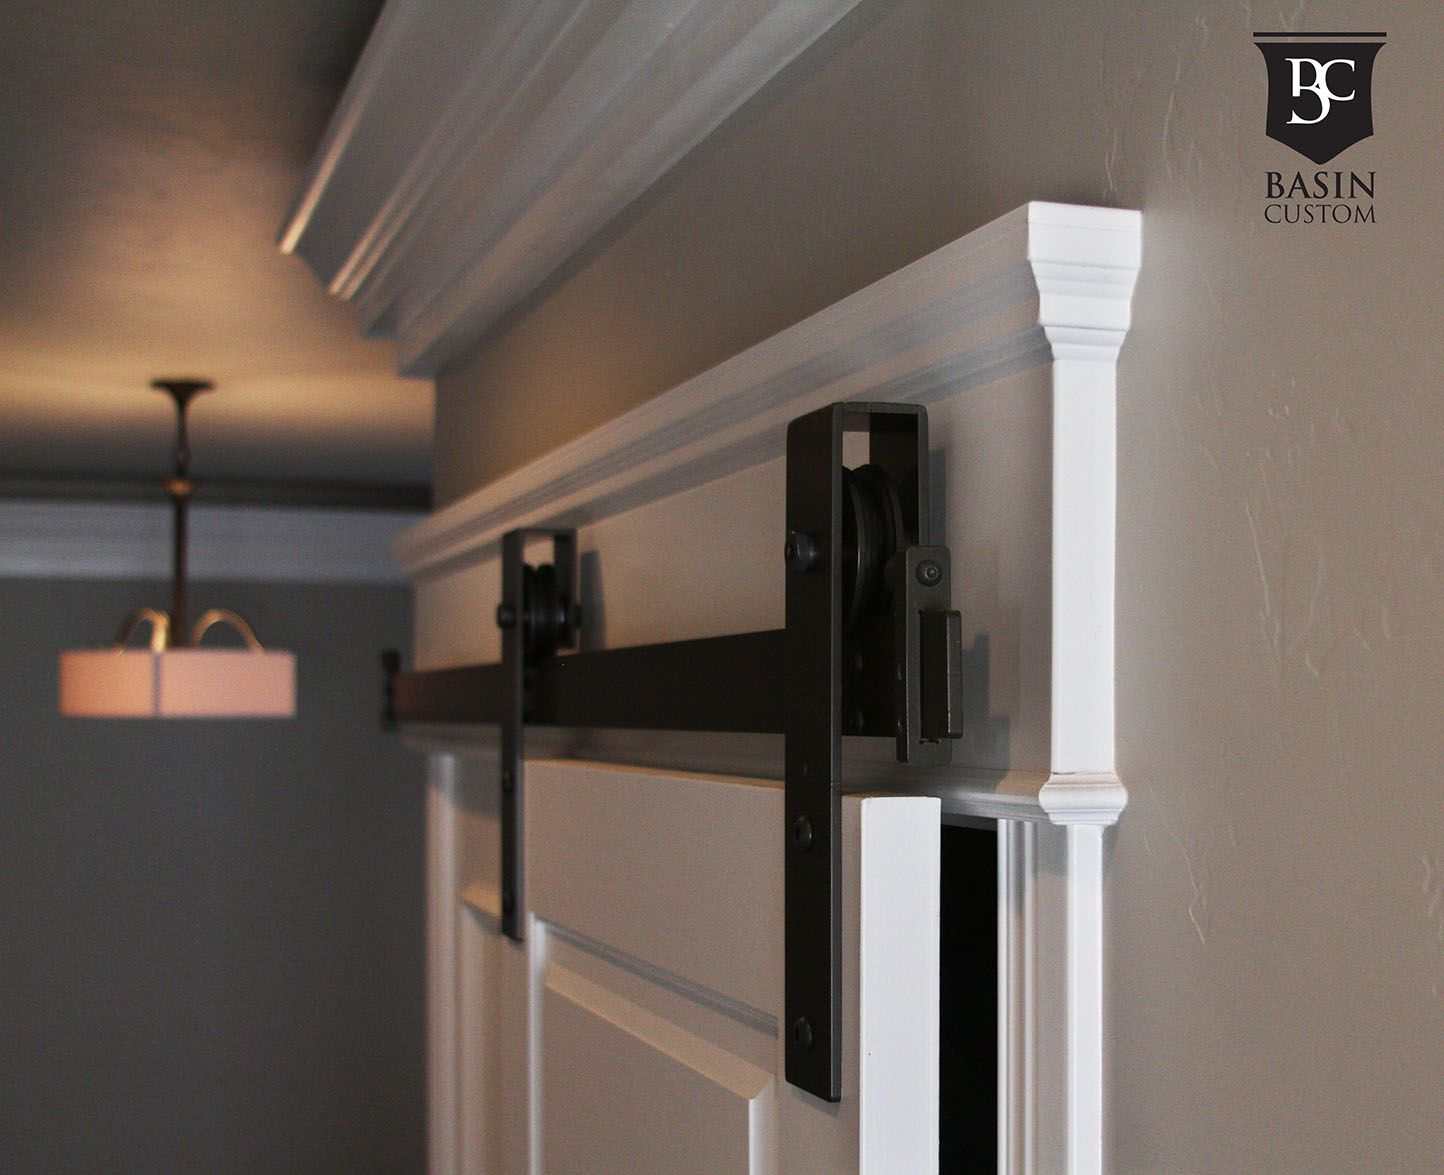 Interior Barn Door Hardware Tracks Are Perfect In Areas Of The Home Where  There Is Limited